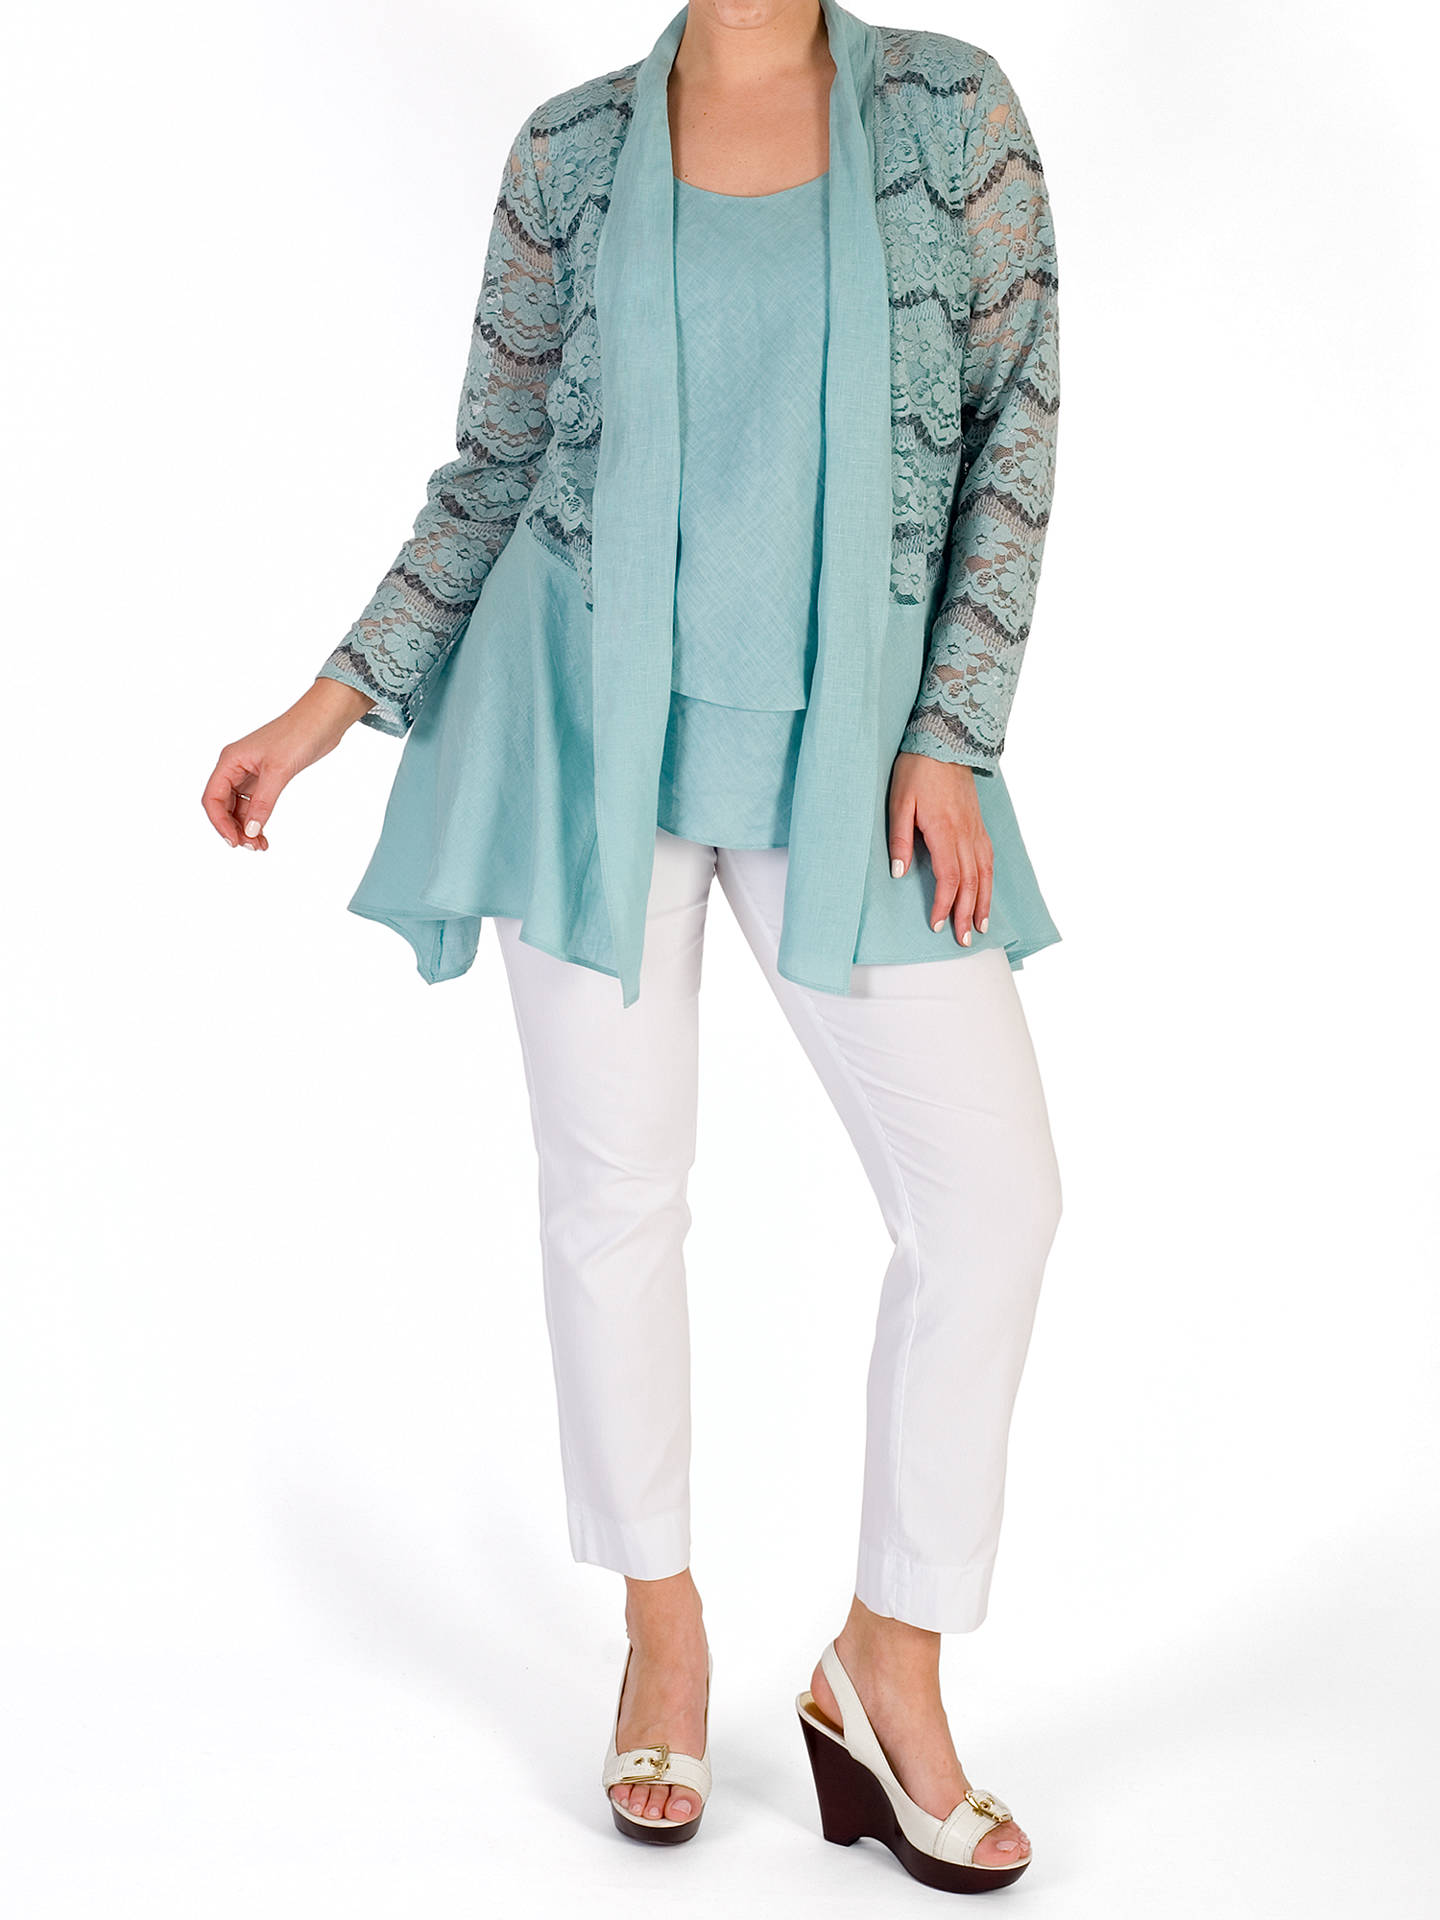 BuyChesca Linen Trim Jacket, Aqua, 12 Online at johnlewis.com